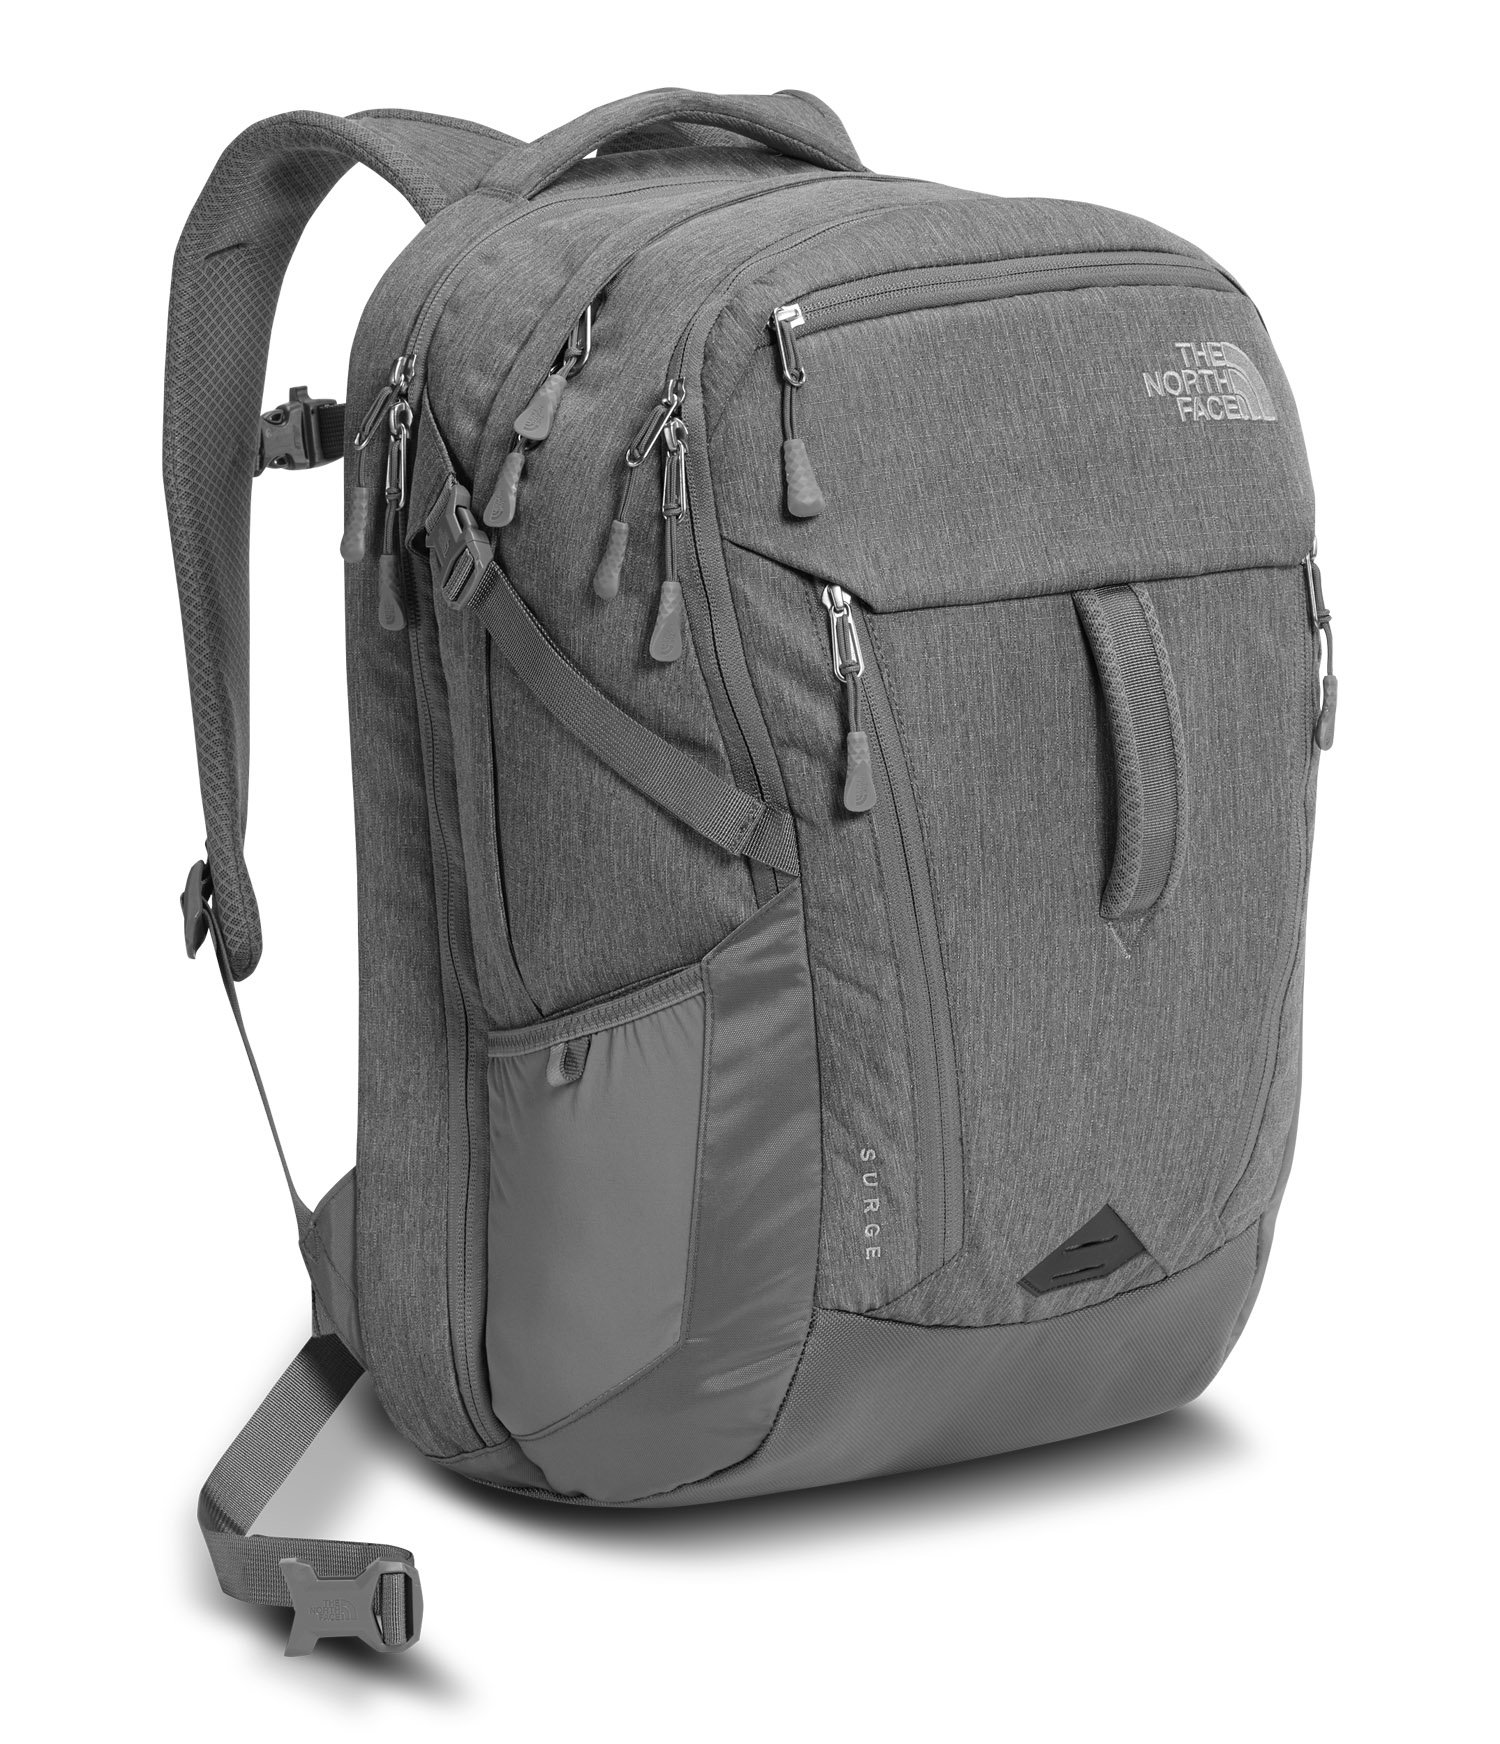 The North Face Surge Laptop Backpack- Sale Colors (Tnf Medium Grey Heather/Zinc